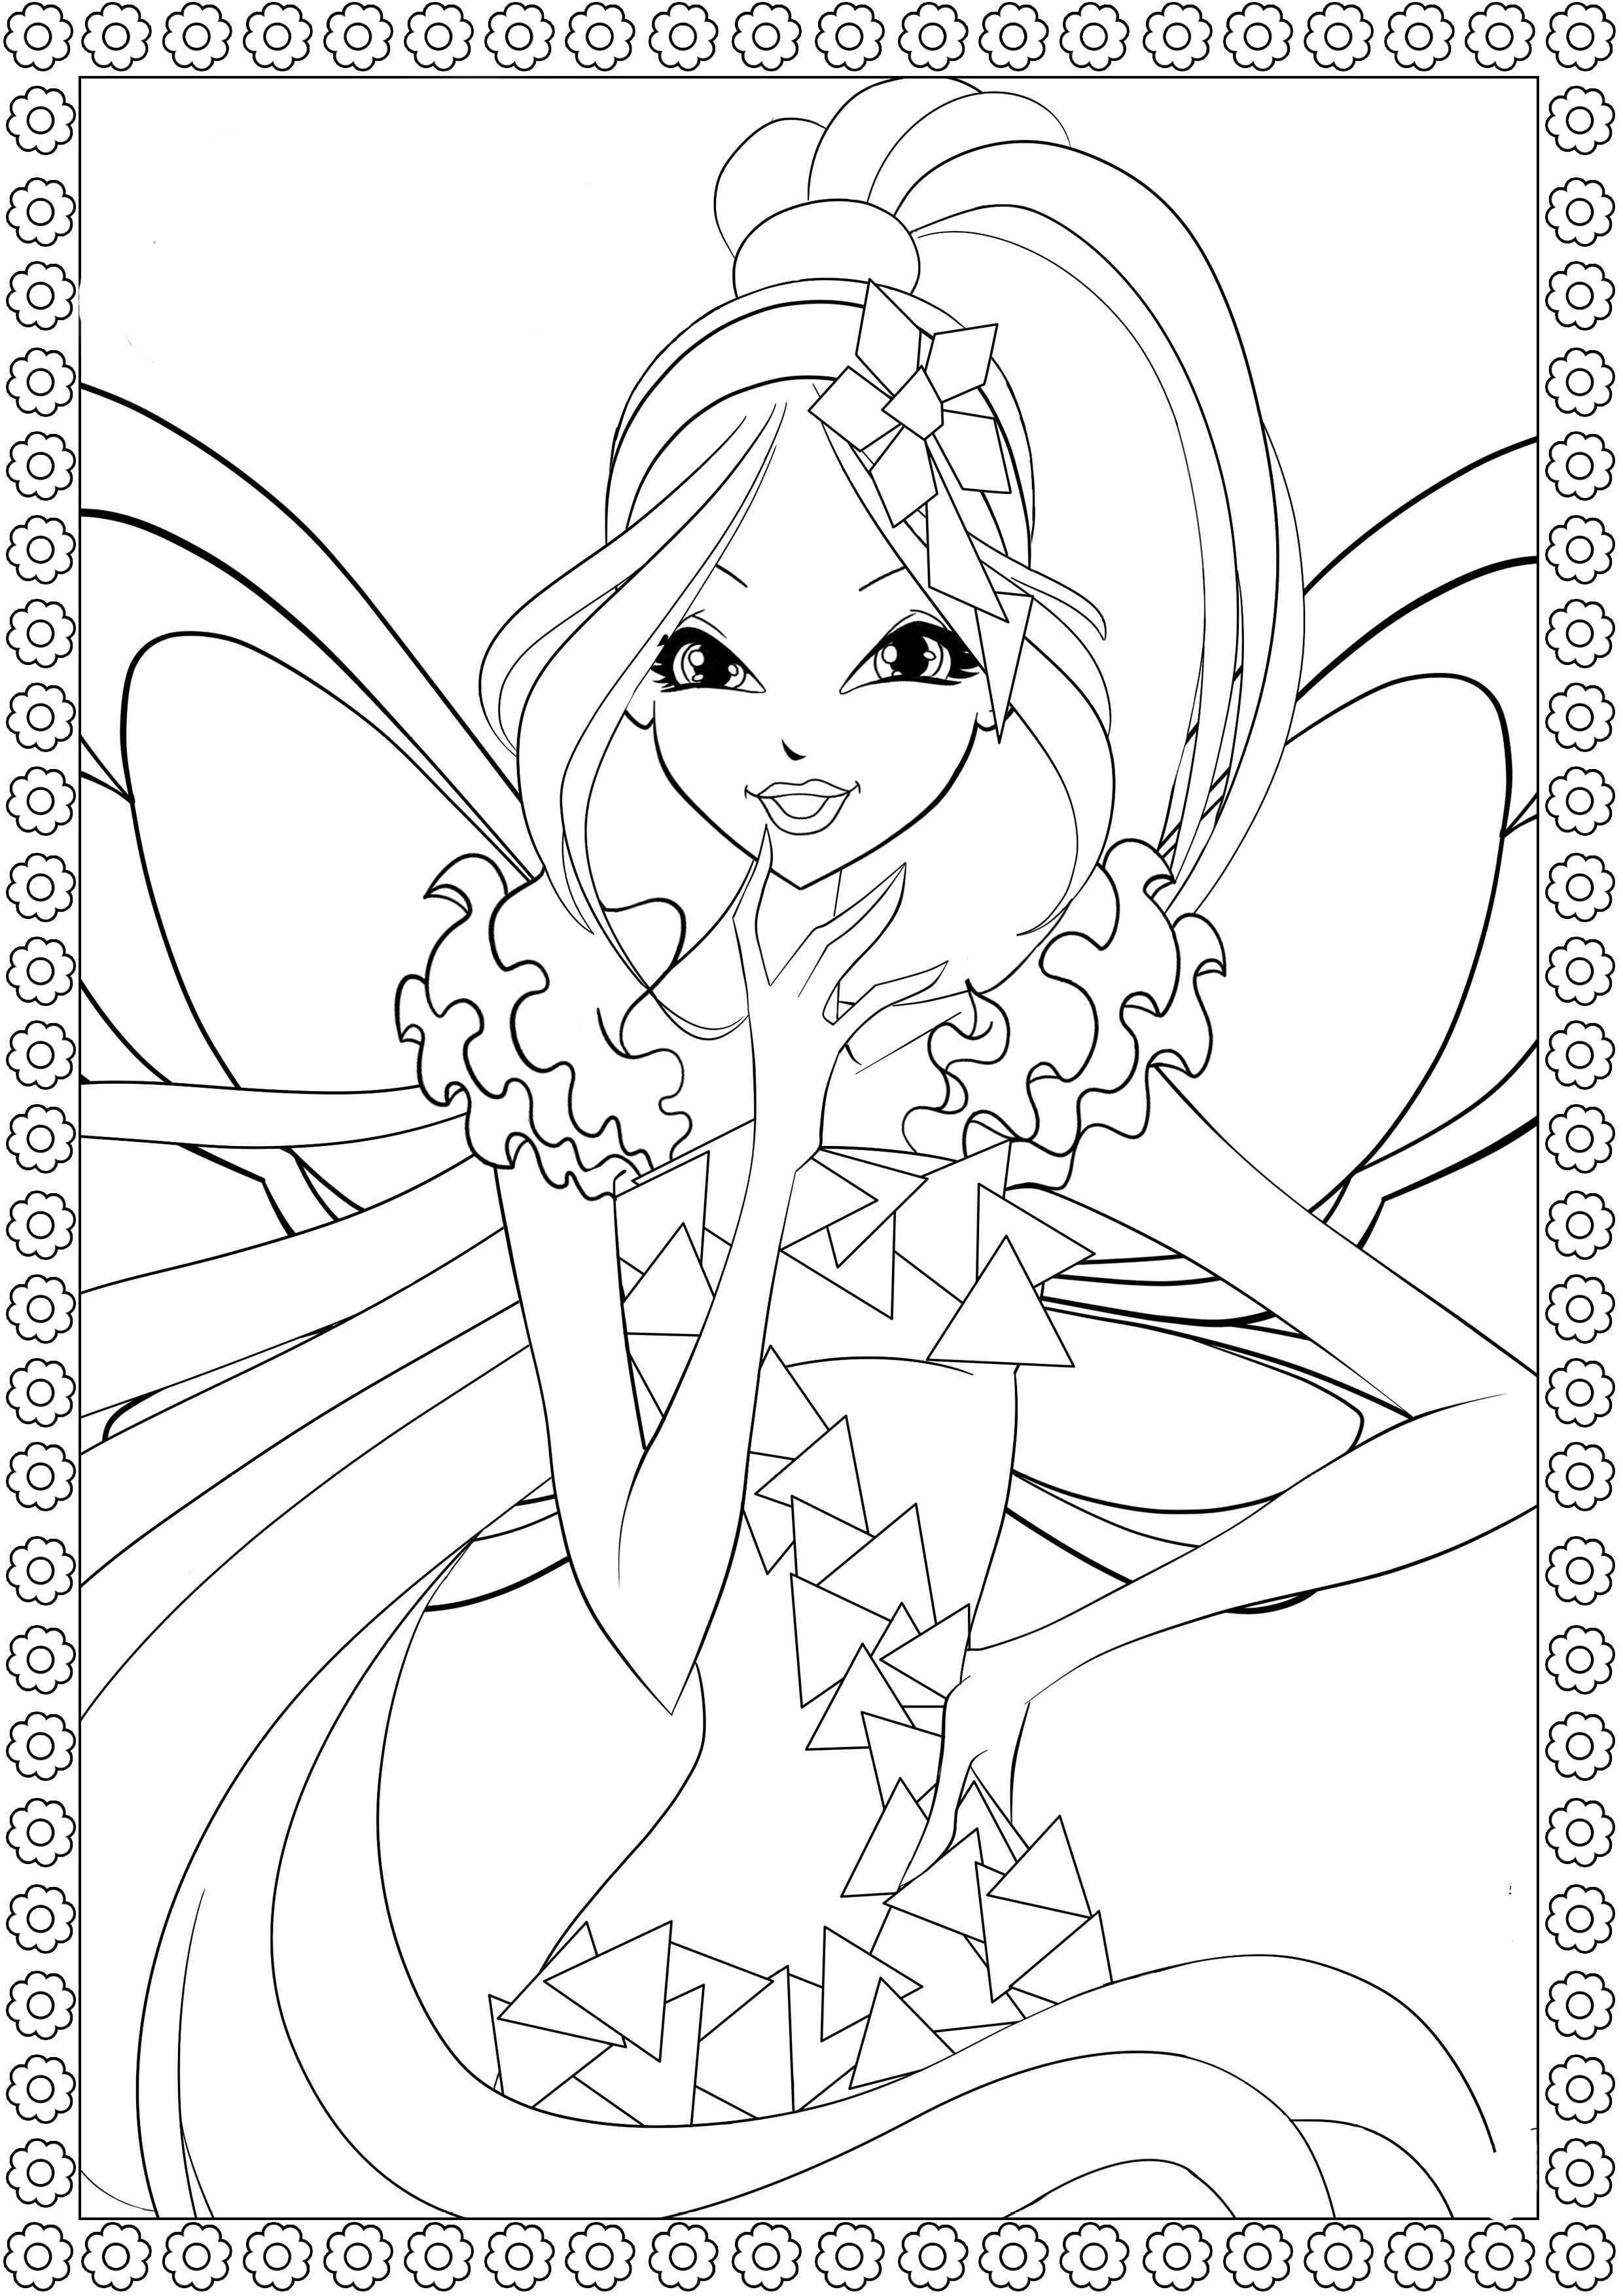 winx coloring pages winx mermaid coloring pages free printable winx mermaid pages winx coloring